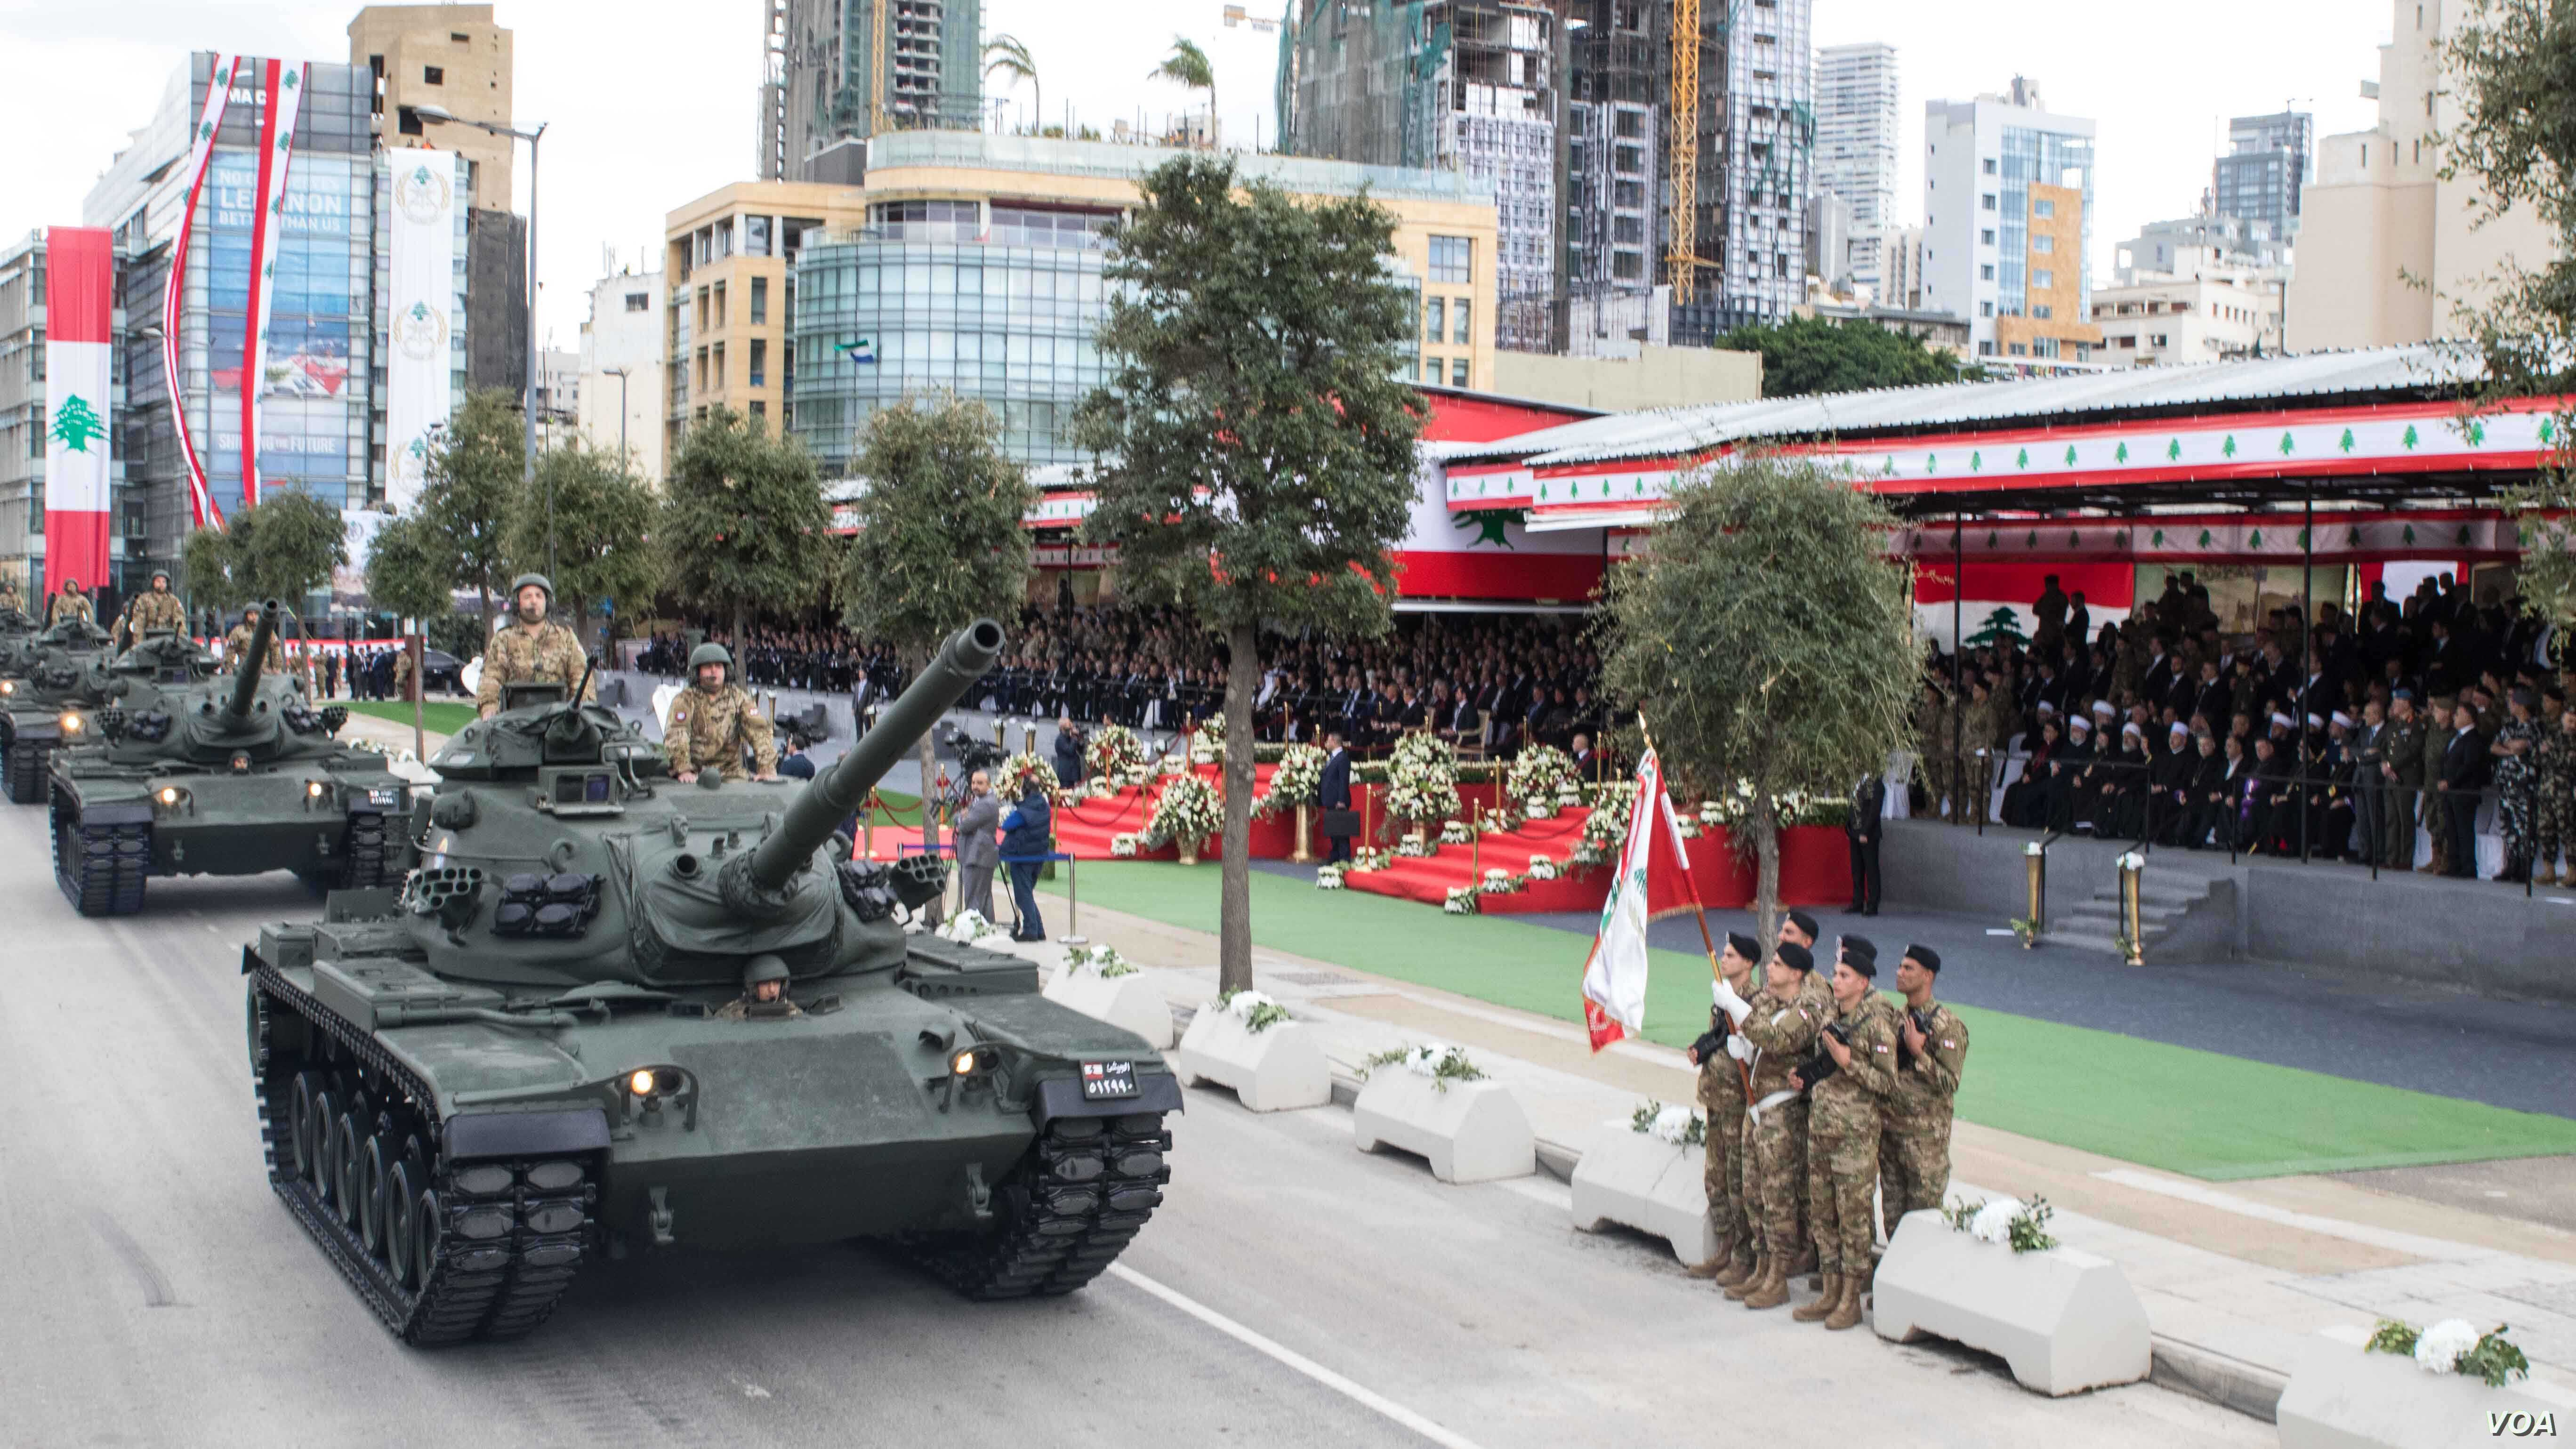 Lebanon displays its military strength at the parade marking Independence Day, Beirut, Lebanon, Nov. 22, 2017. (John Owens for VOA)